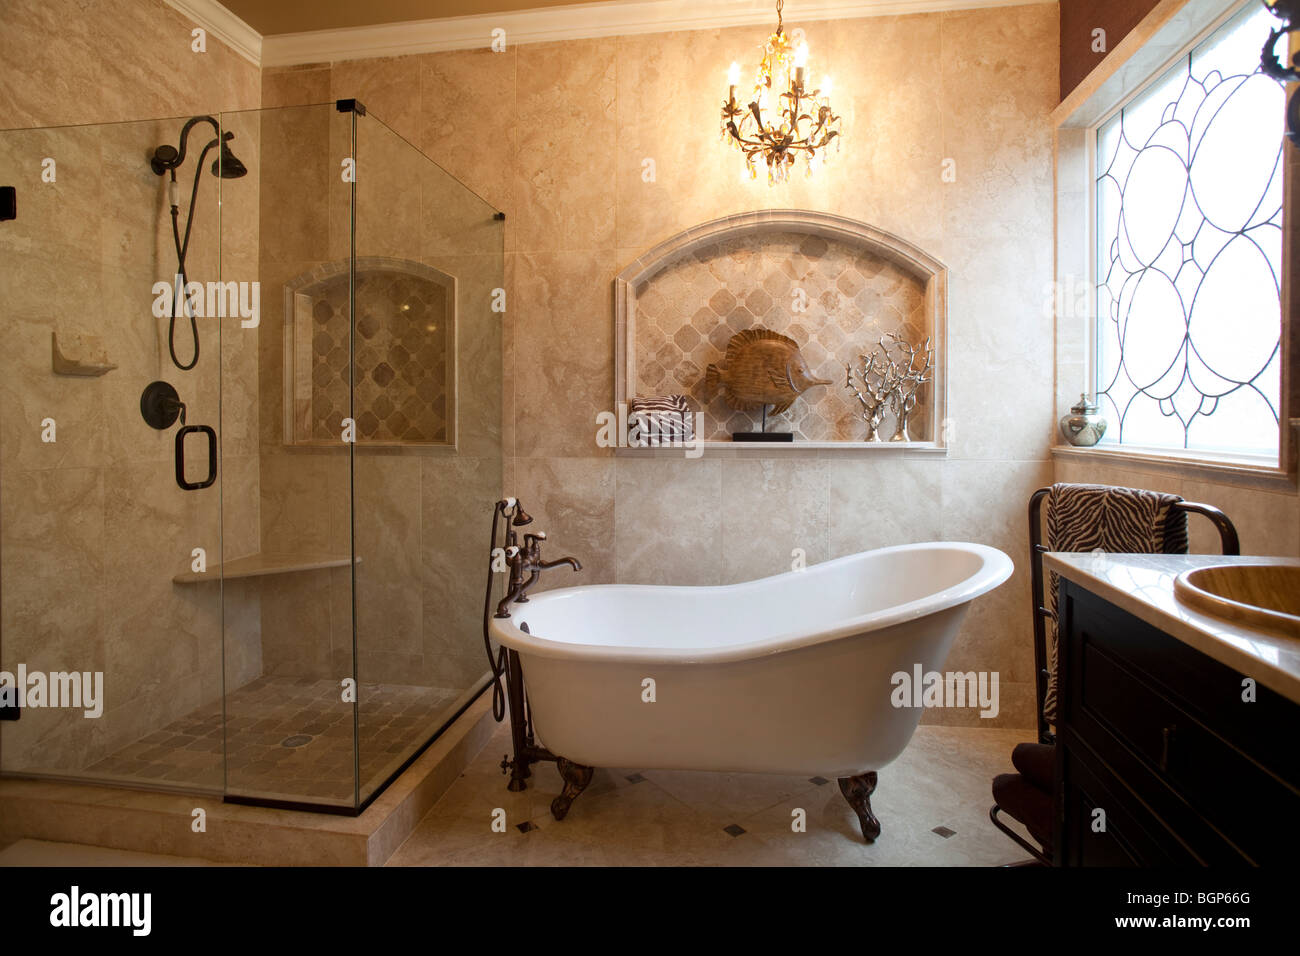 Master Bathroom With Victorian Style Bath Tub